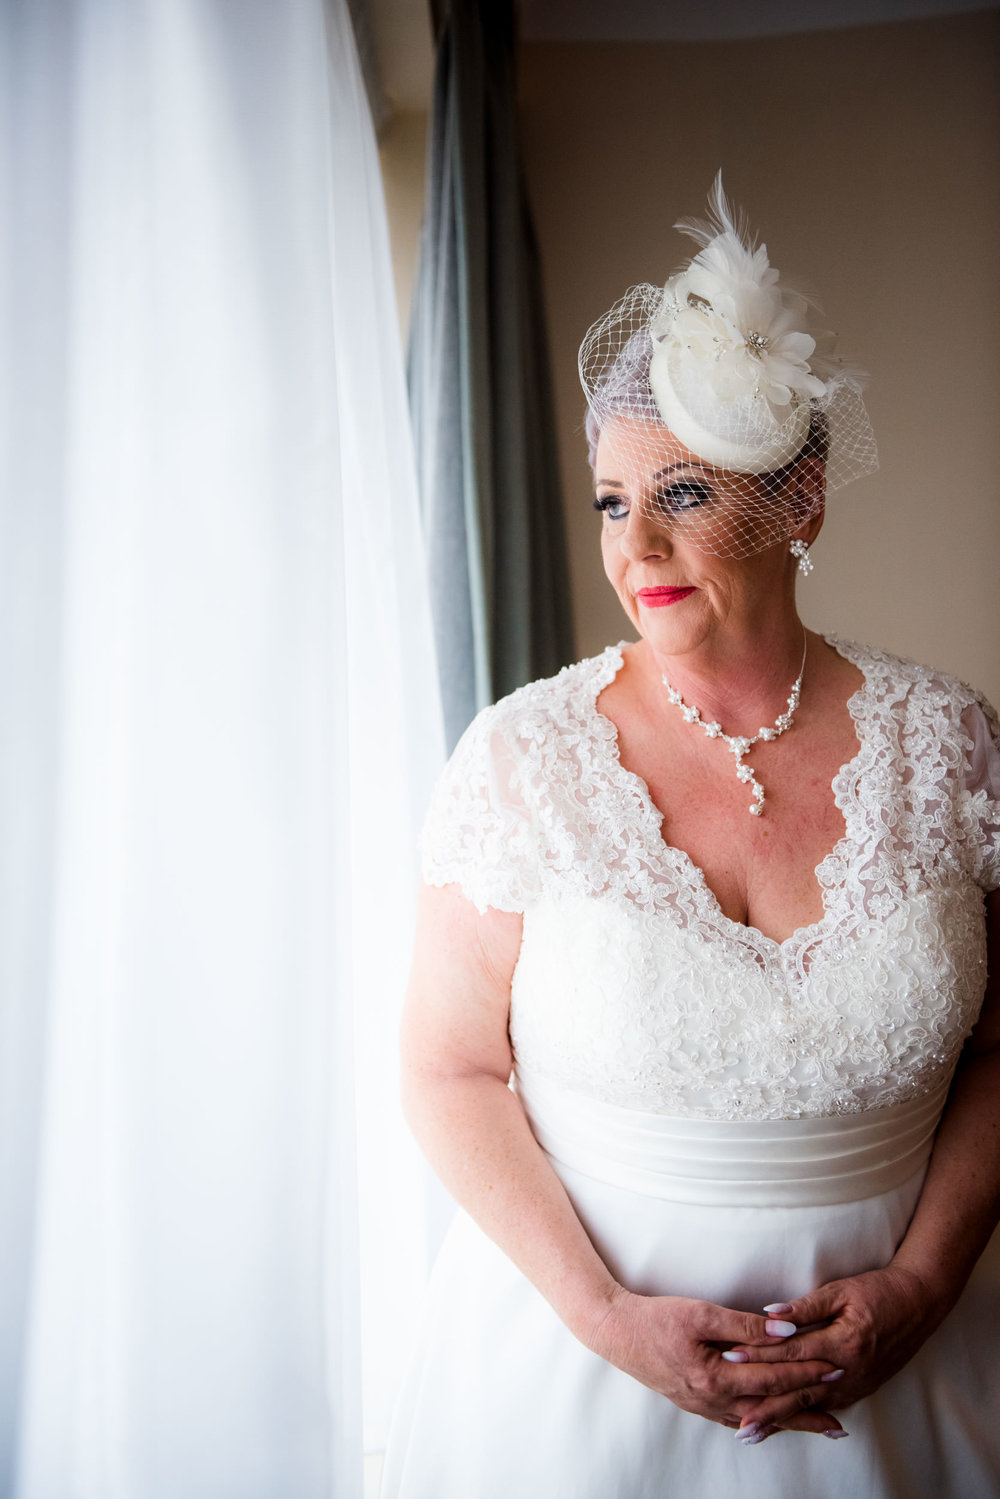 Stunning Bride after putting on the wedding dress looking out of the window